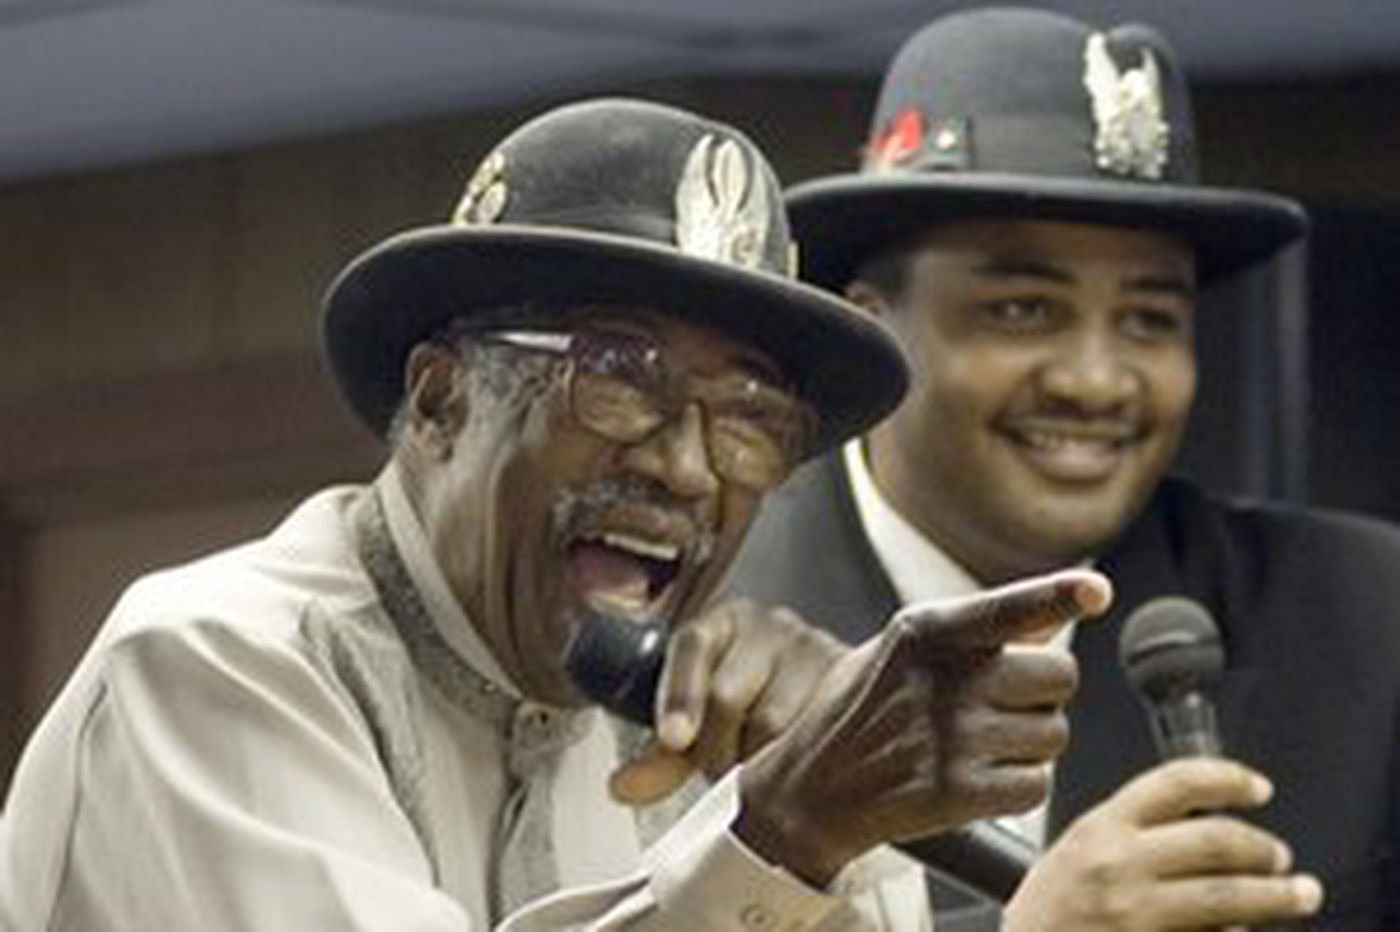 Bo Diddley, rock legend mimicked by many, dies at 79